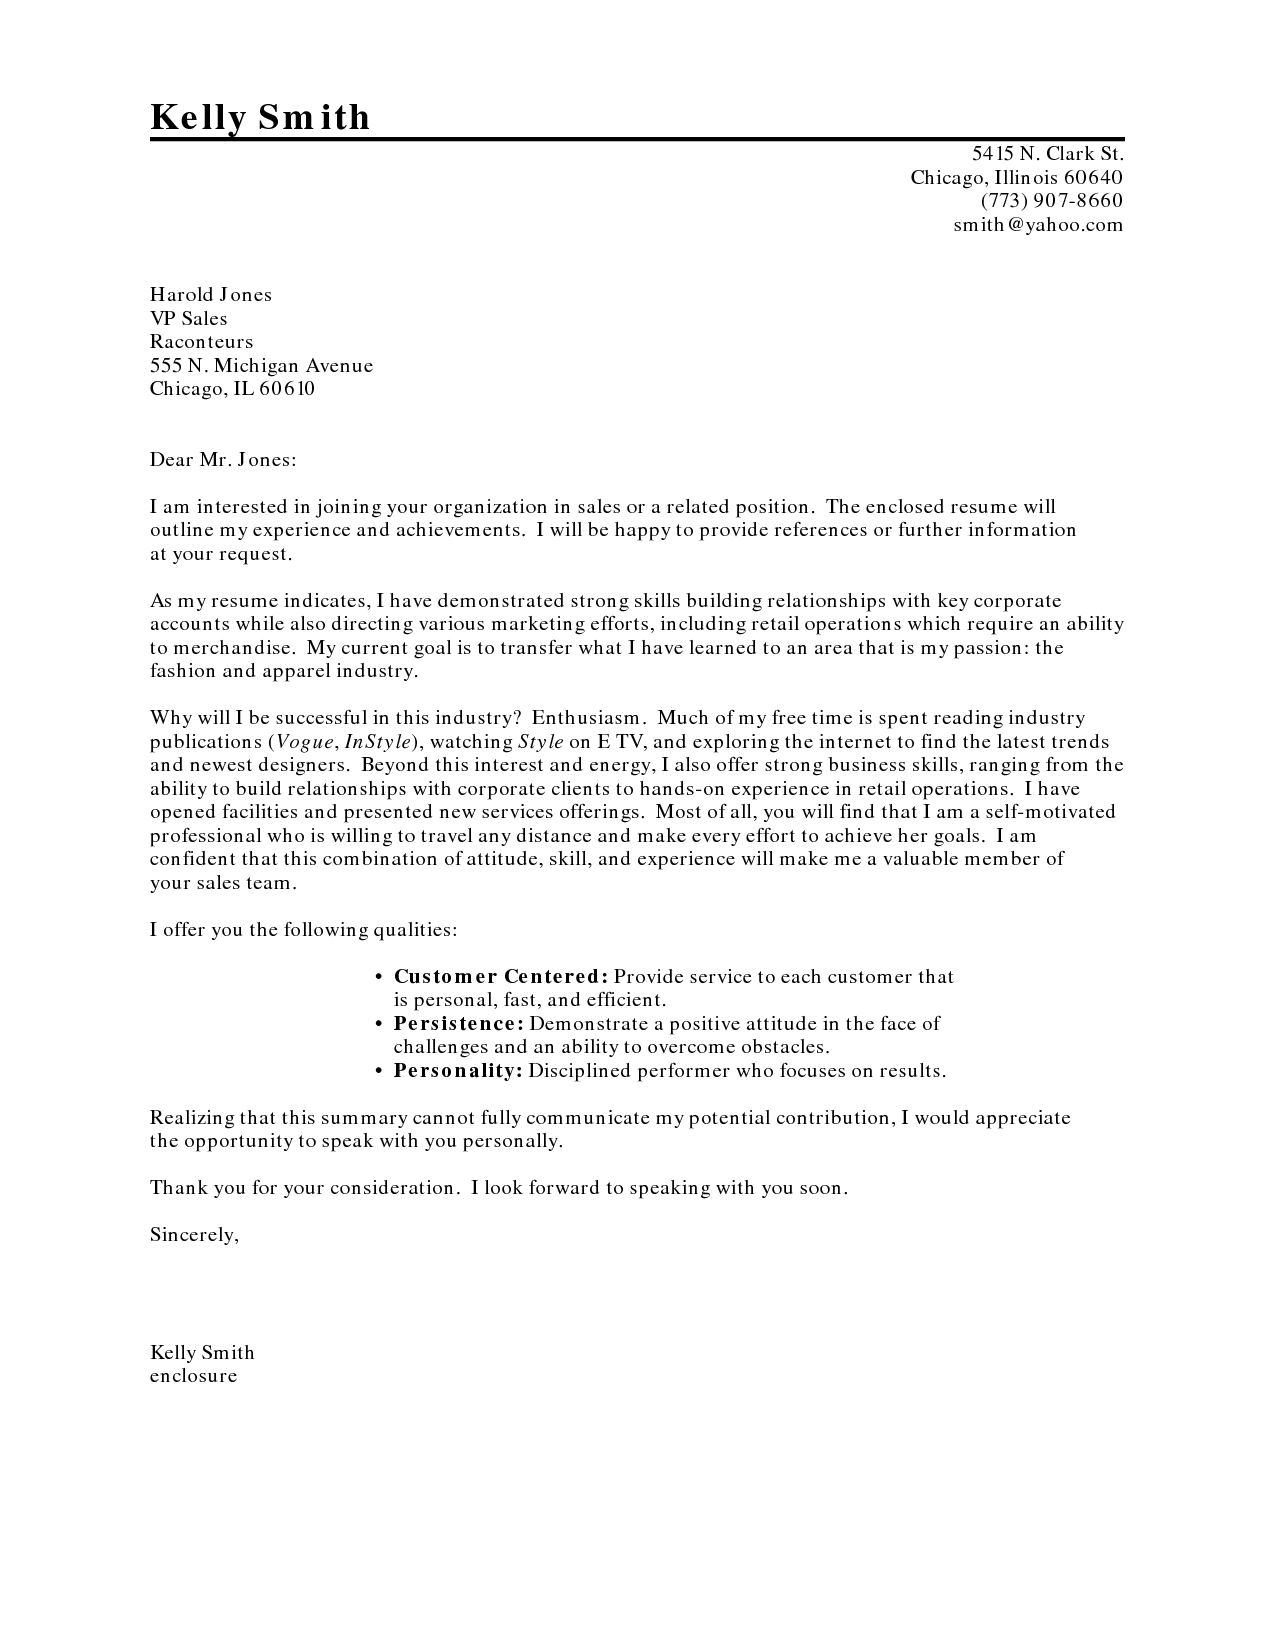 cover letter for new career sample cover letter for resume - How To Compose A Cover Letter